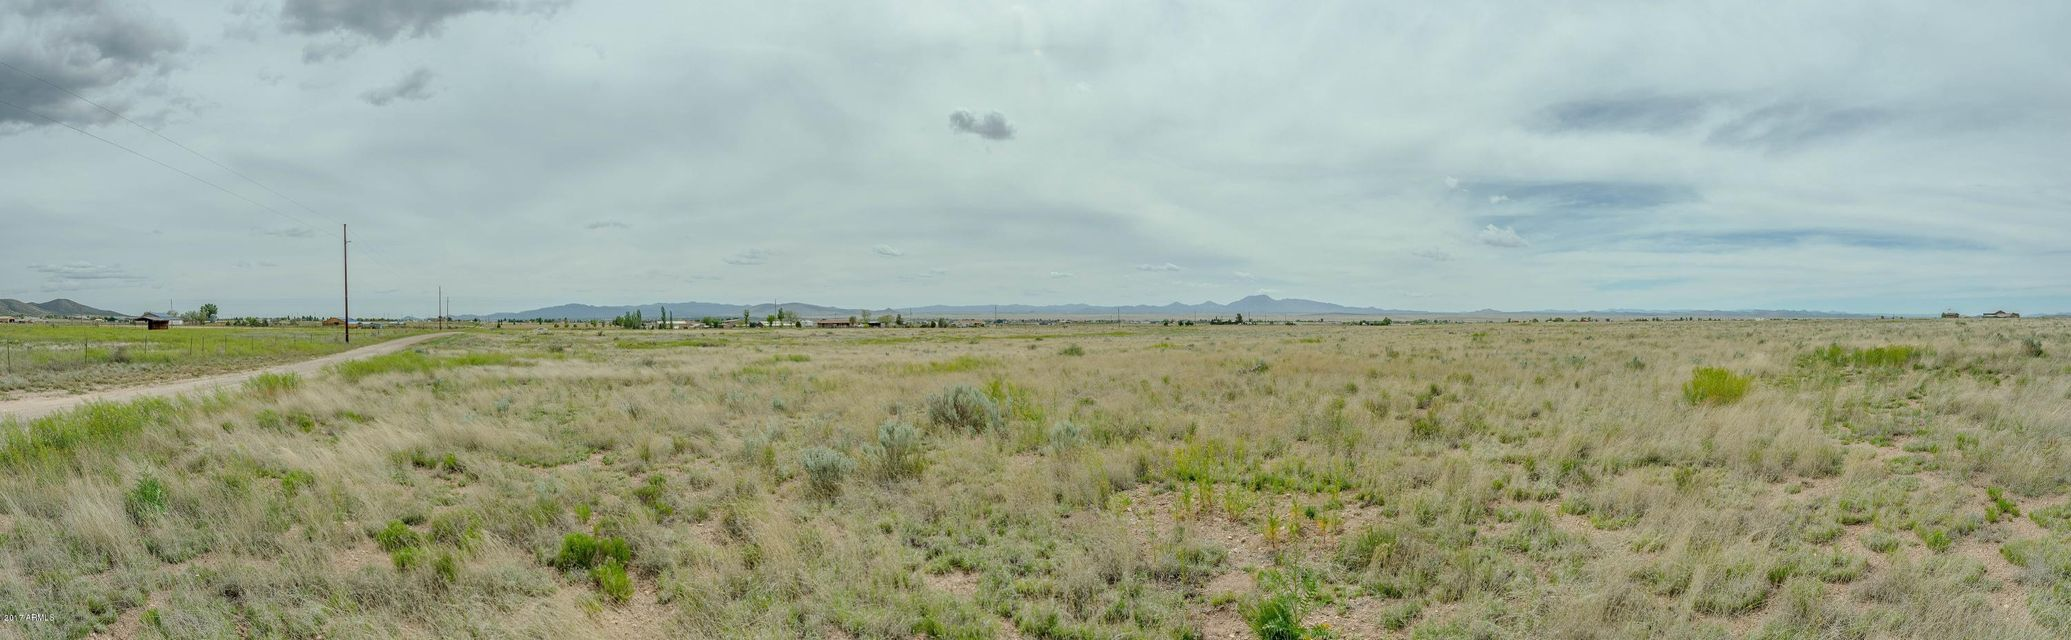 11611 N Coyote Springs Road Prescott Valley, AZ 86315 - MLS #: 5599077